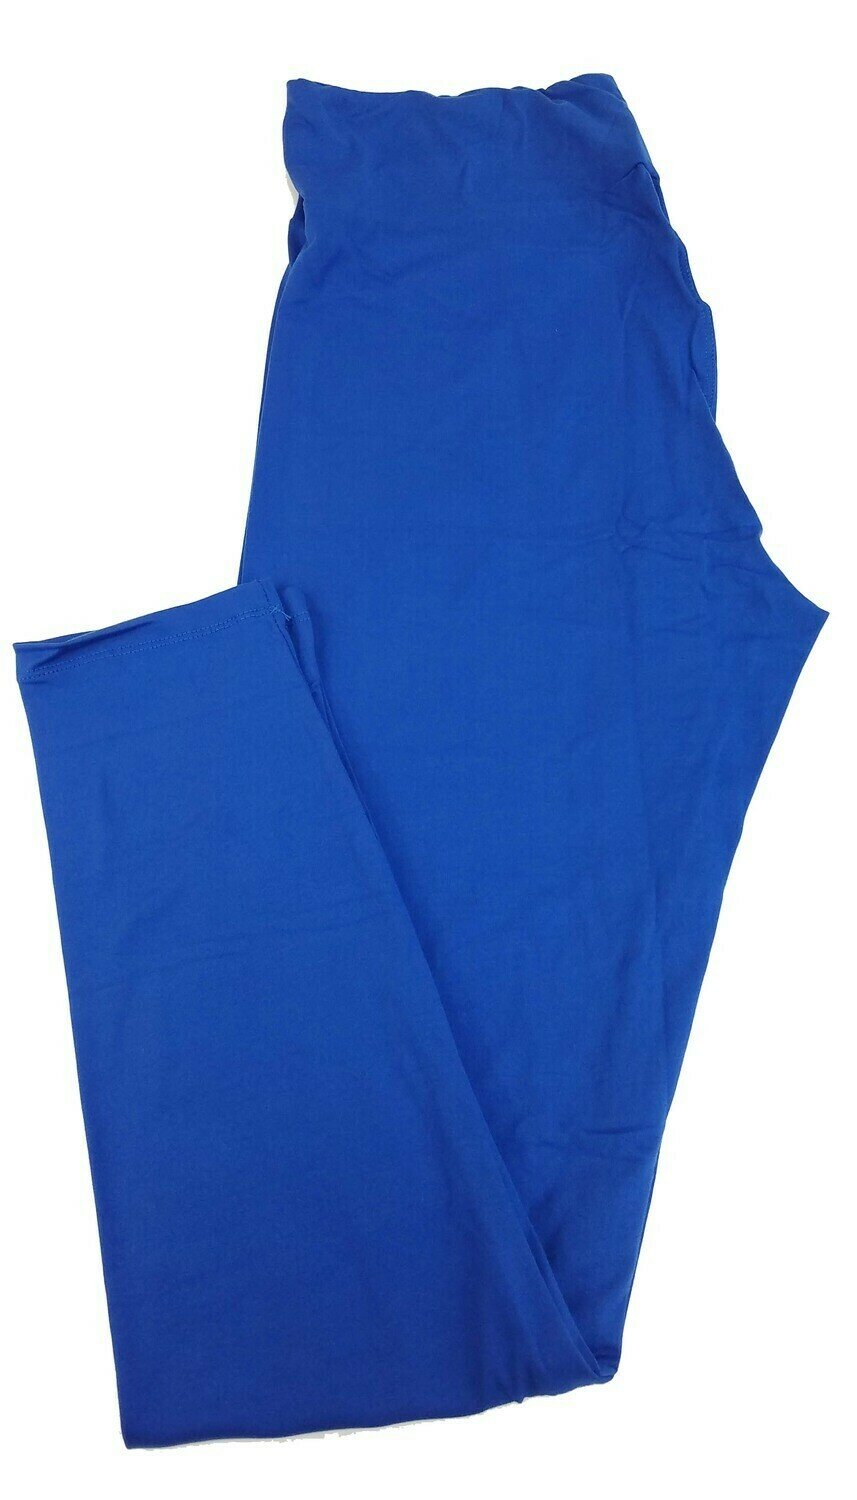 LuLaRoe Tall Curvy TC Solid Limoges Blue Buttery Soft Leggings fits Womens sizes 12-18